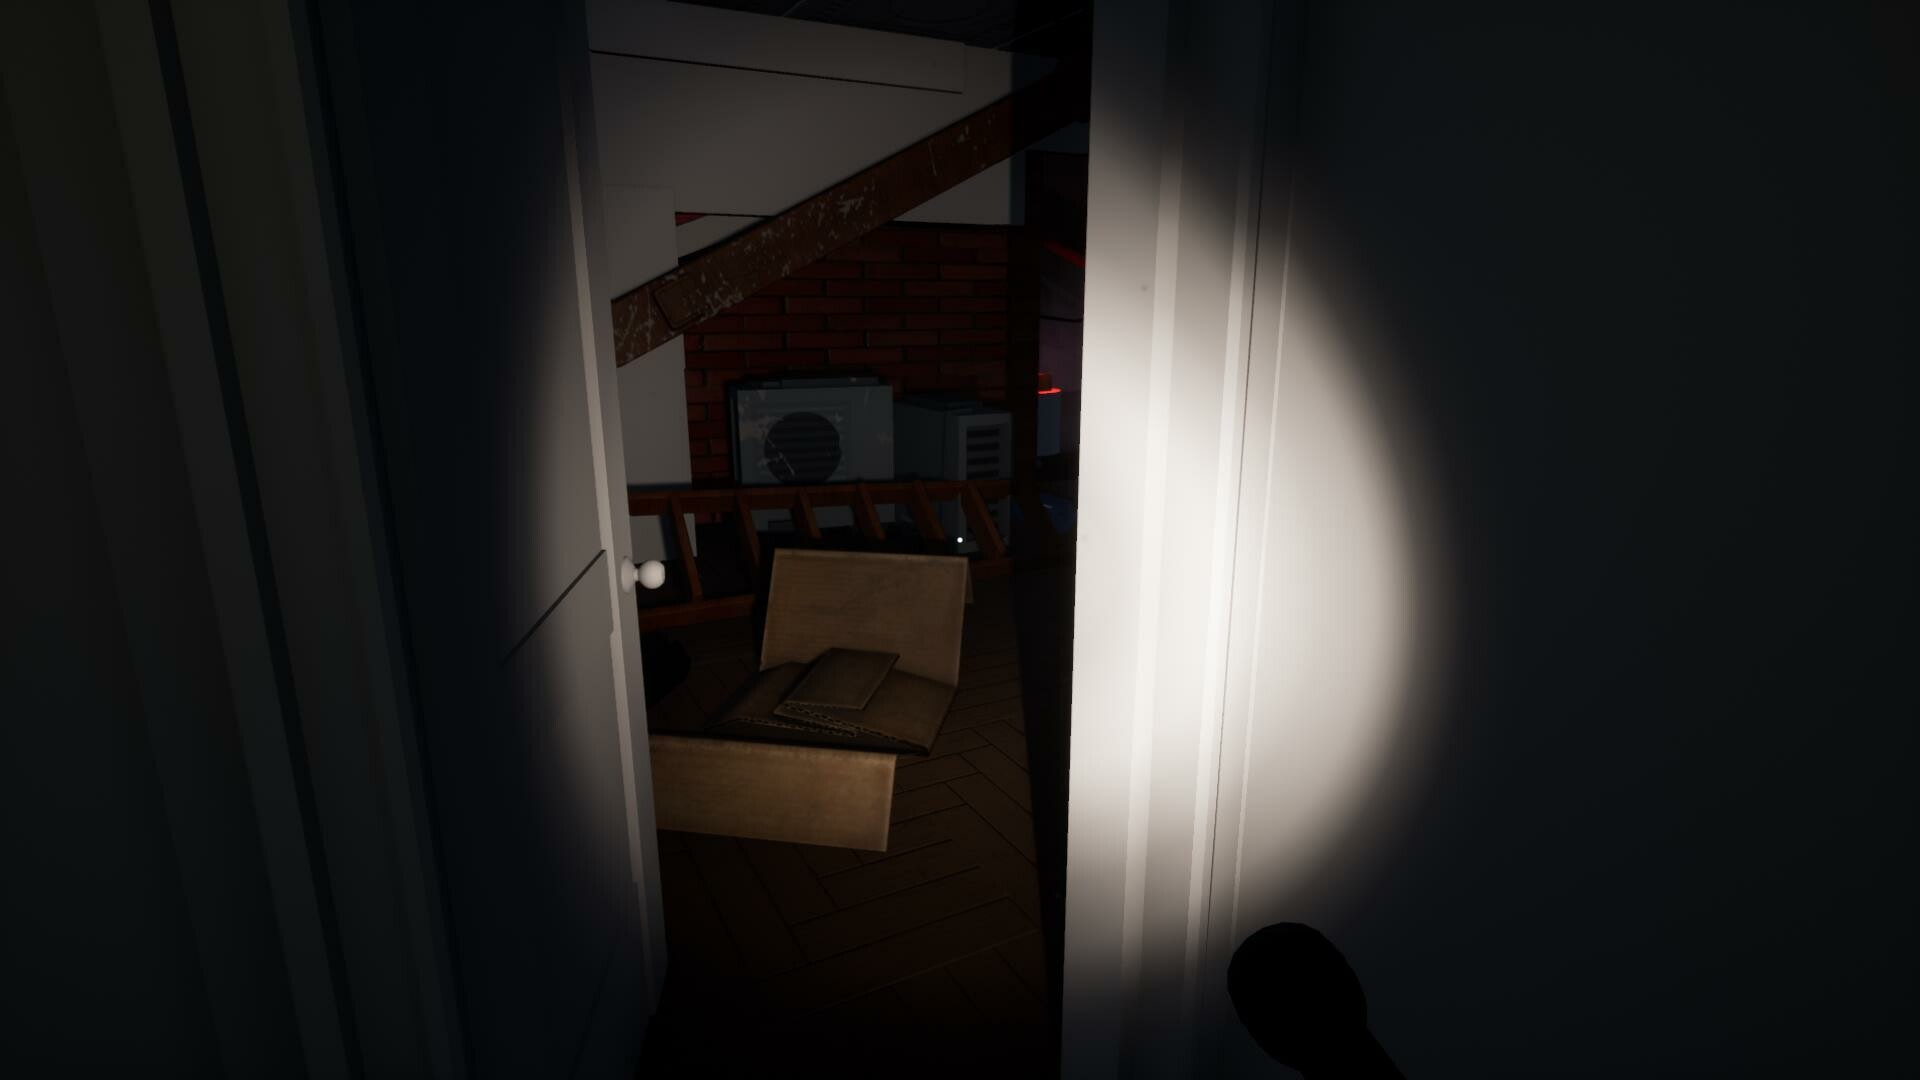 The player eliminates another bear and enters the attic with a key